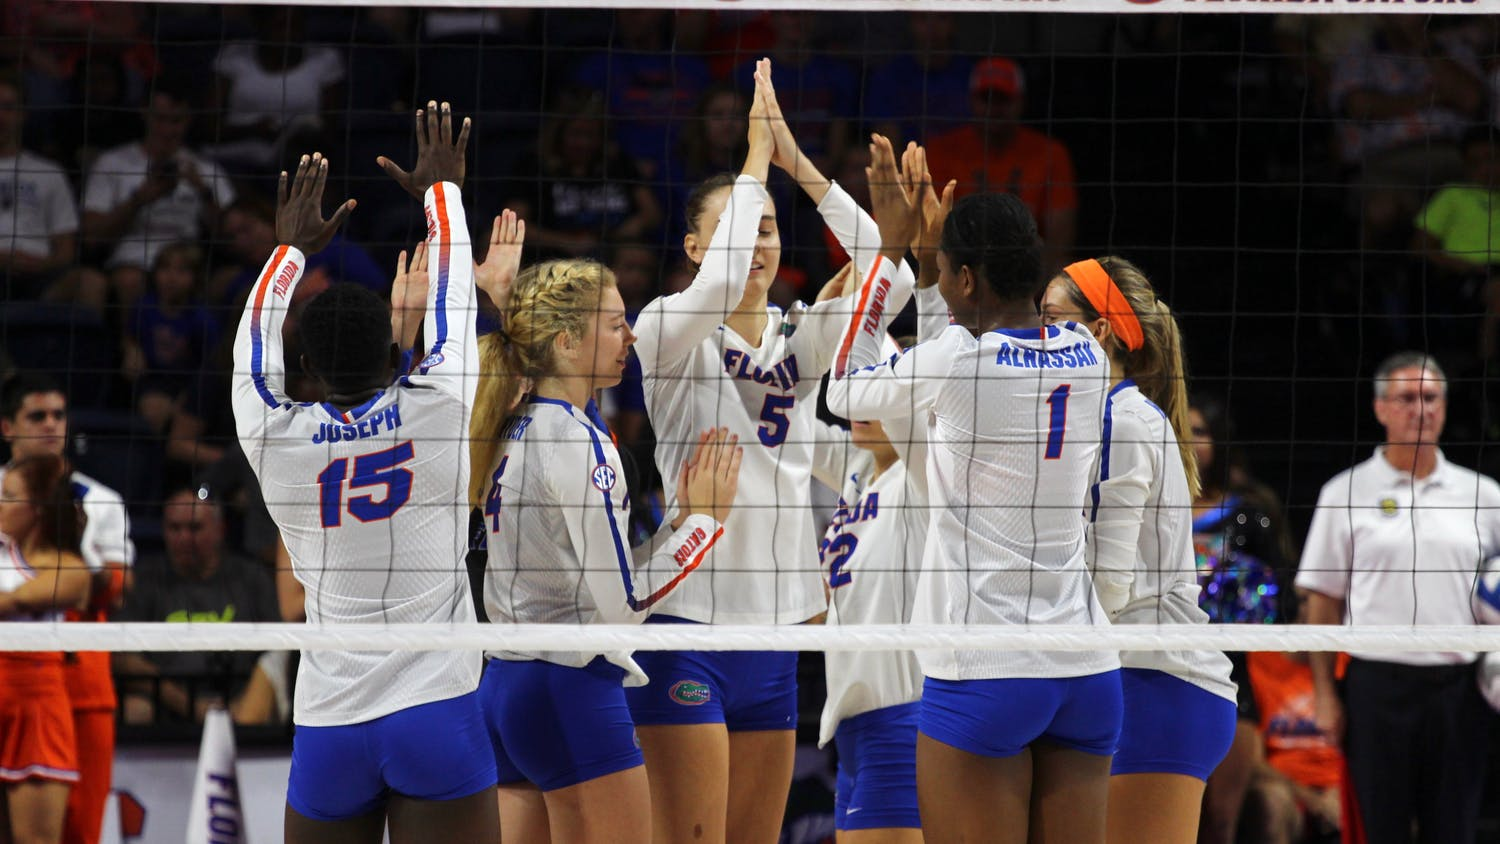 The UF volleyball team advanced to the national title game for the second time under coach Mary Wise. The Gators played thrillers against Southern California (Dec. 9) and Stanford (Dec. 14) to advance to the championship game.